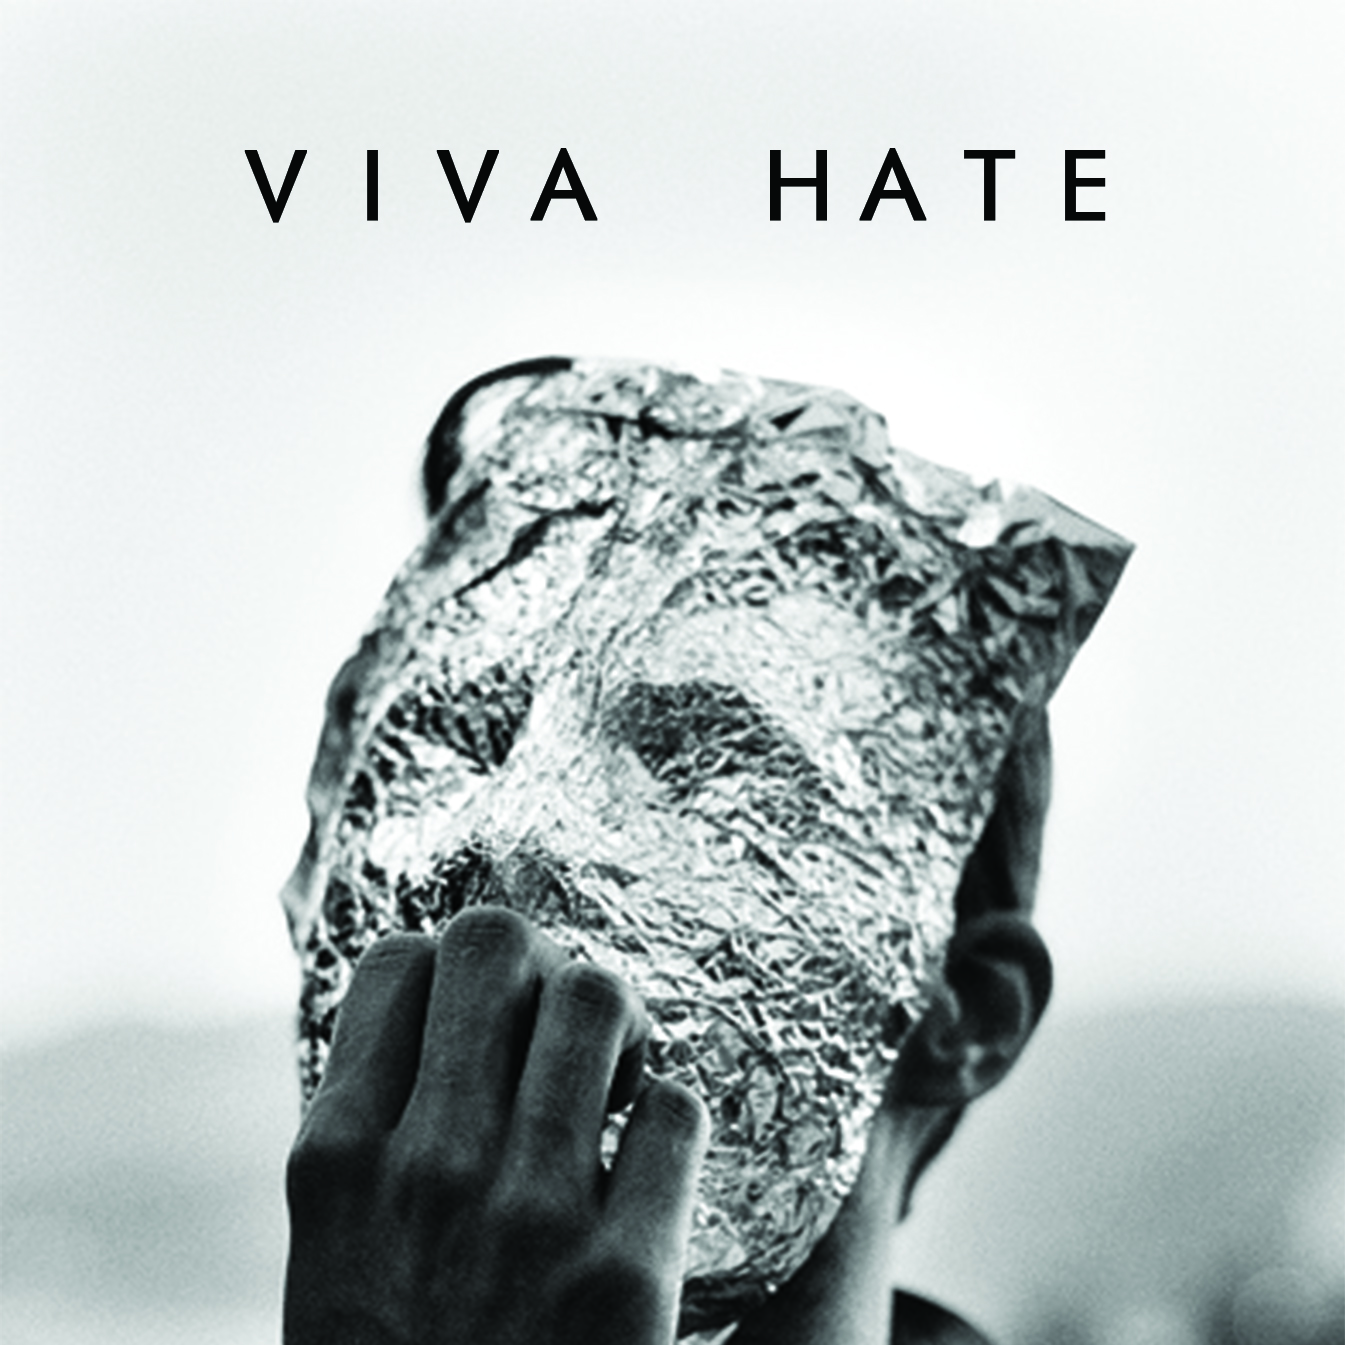 VIVA HATE: VOLUME II - January 2014